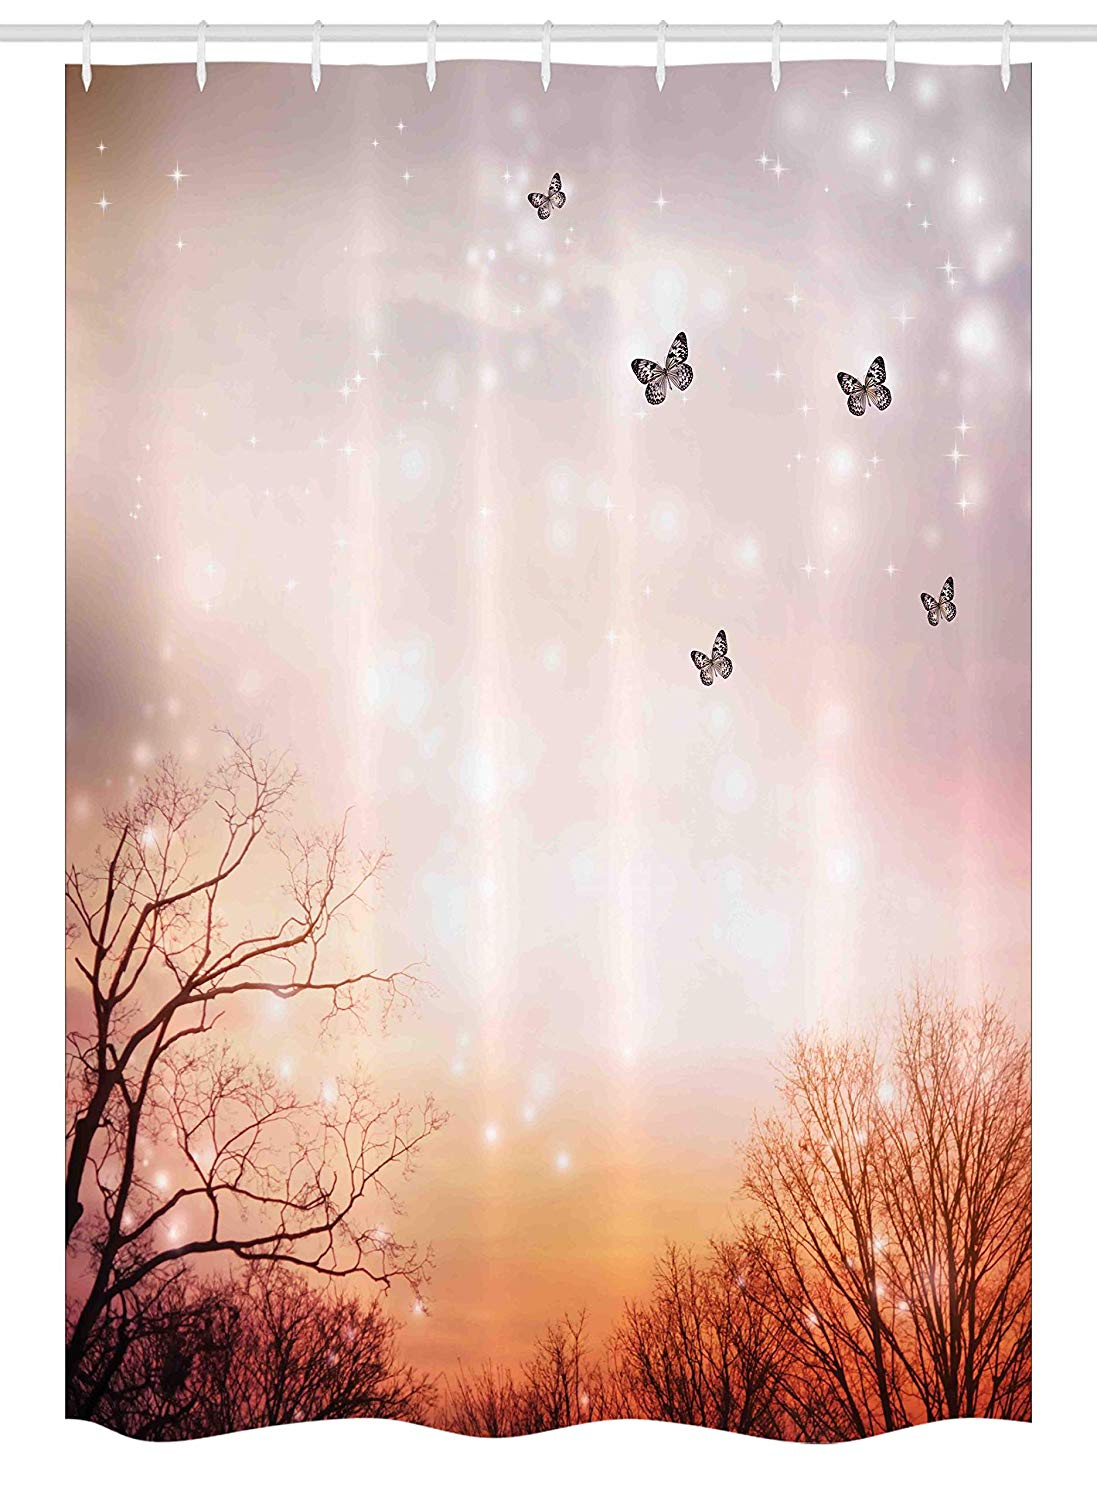 Ambesonne Butterfly Stall Shower Curtain, Dreamy Butterflies Over Trees Romantic Fantasy Blurry Sky Artistic Design, Fabric Bathroom Decor Set with Hooks, 54 W x 78 L Inches, Orange Baby Pink